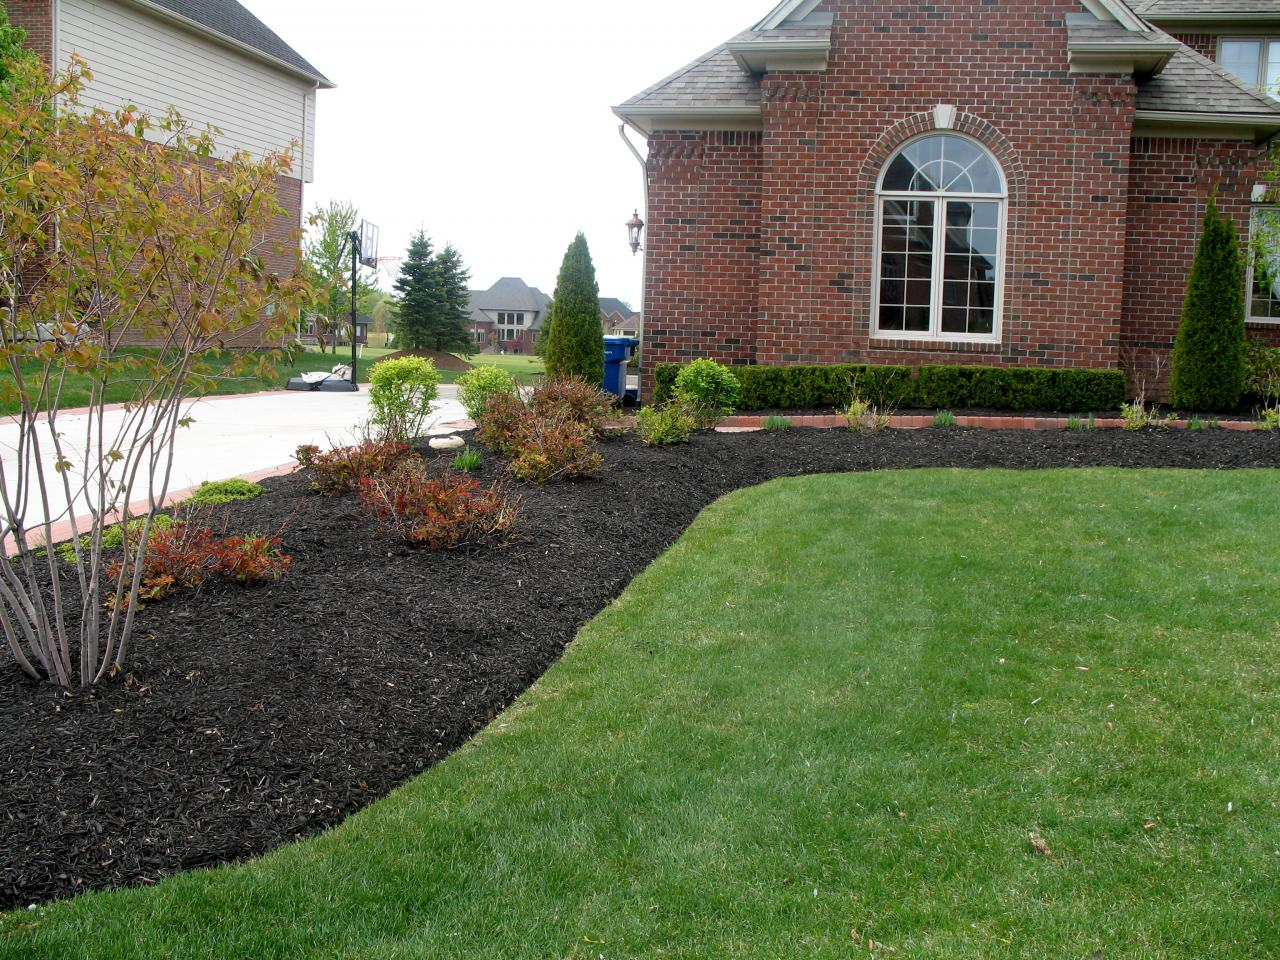 Fito 39 s landscaping landscaping photos - Landscaping fotos ...